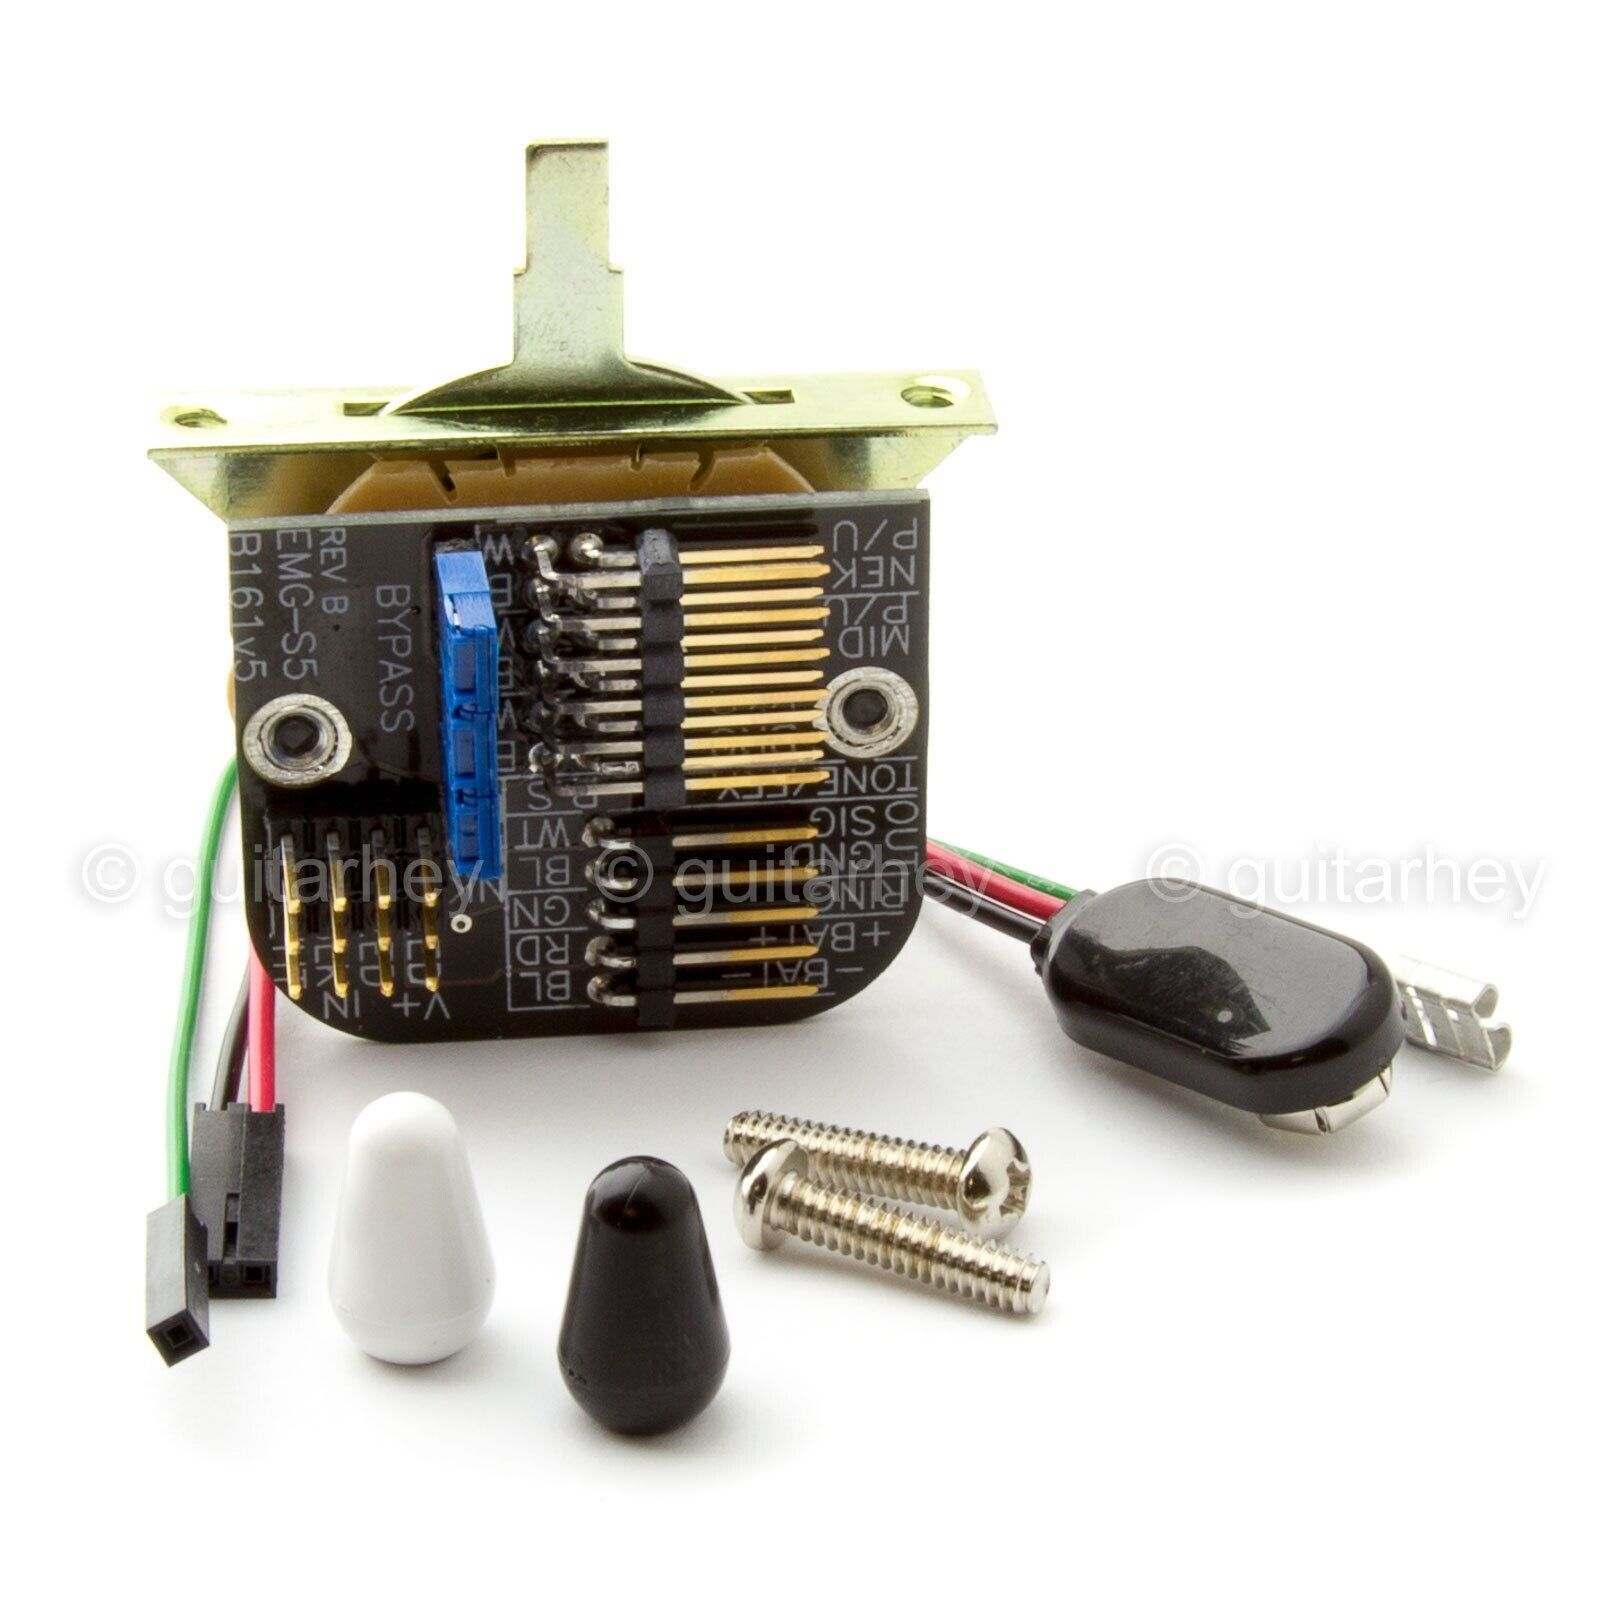 New Emg 5 Position Strat Switch Solderless Way For Active Pickups Details About Pickup J Pj Bass Style Complete Wiring Kit 1 Of 5free Shipping